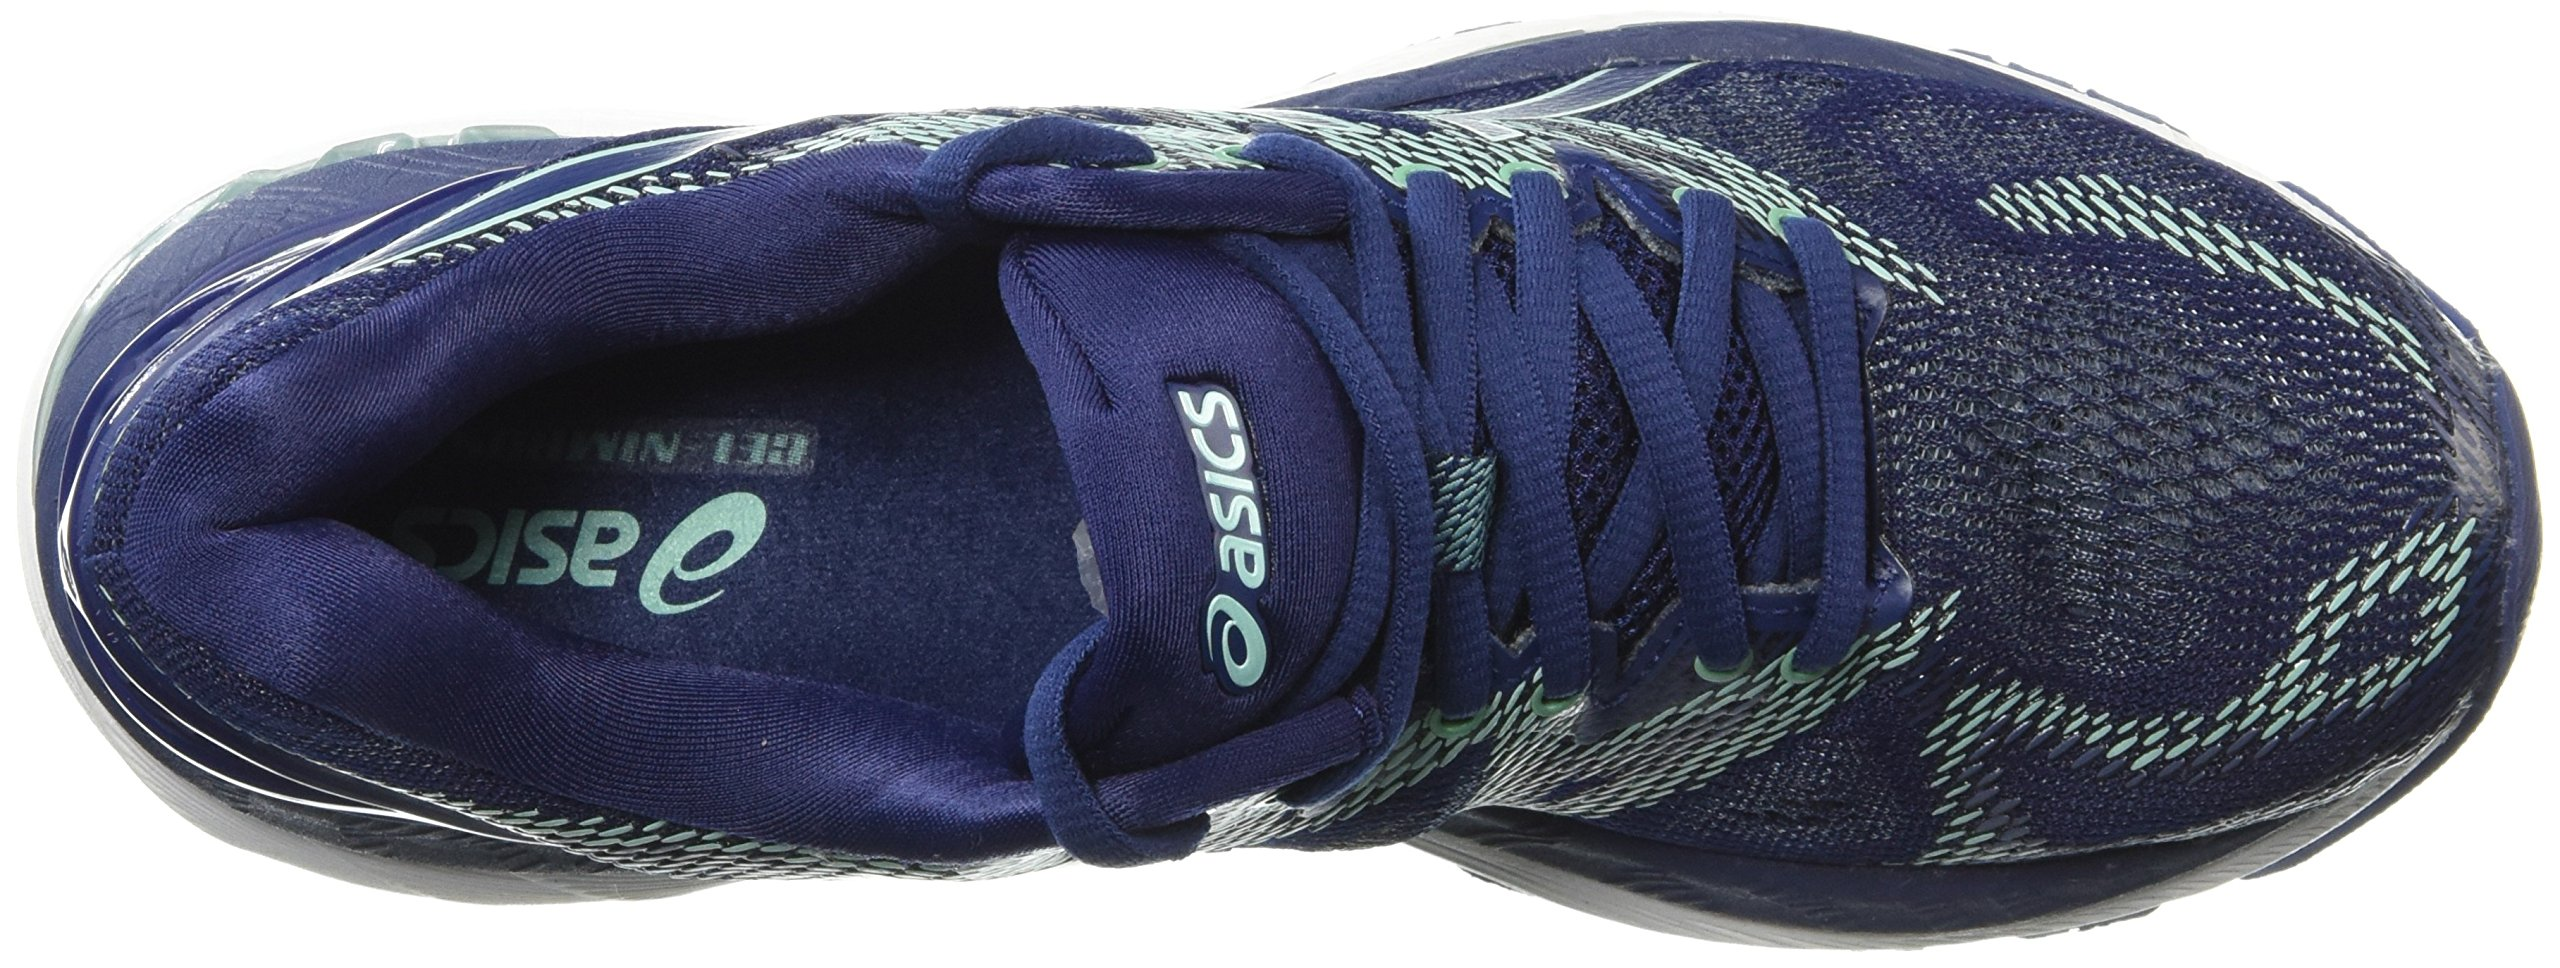 ASICS Women's Gel-Nimbus 20 Running Shoe, indigo blue/indigo blue/opal green, 12 D US by ASICS (Image #7)